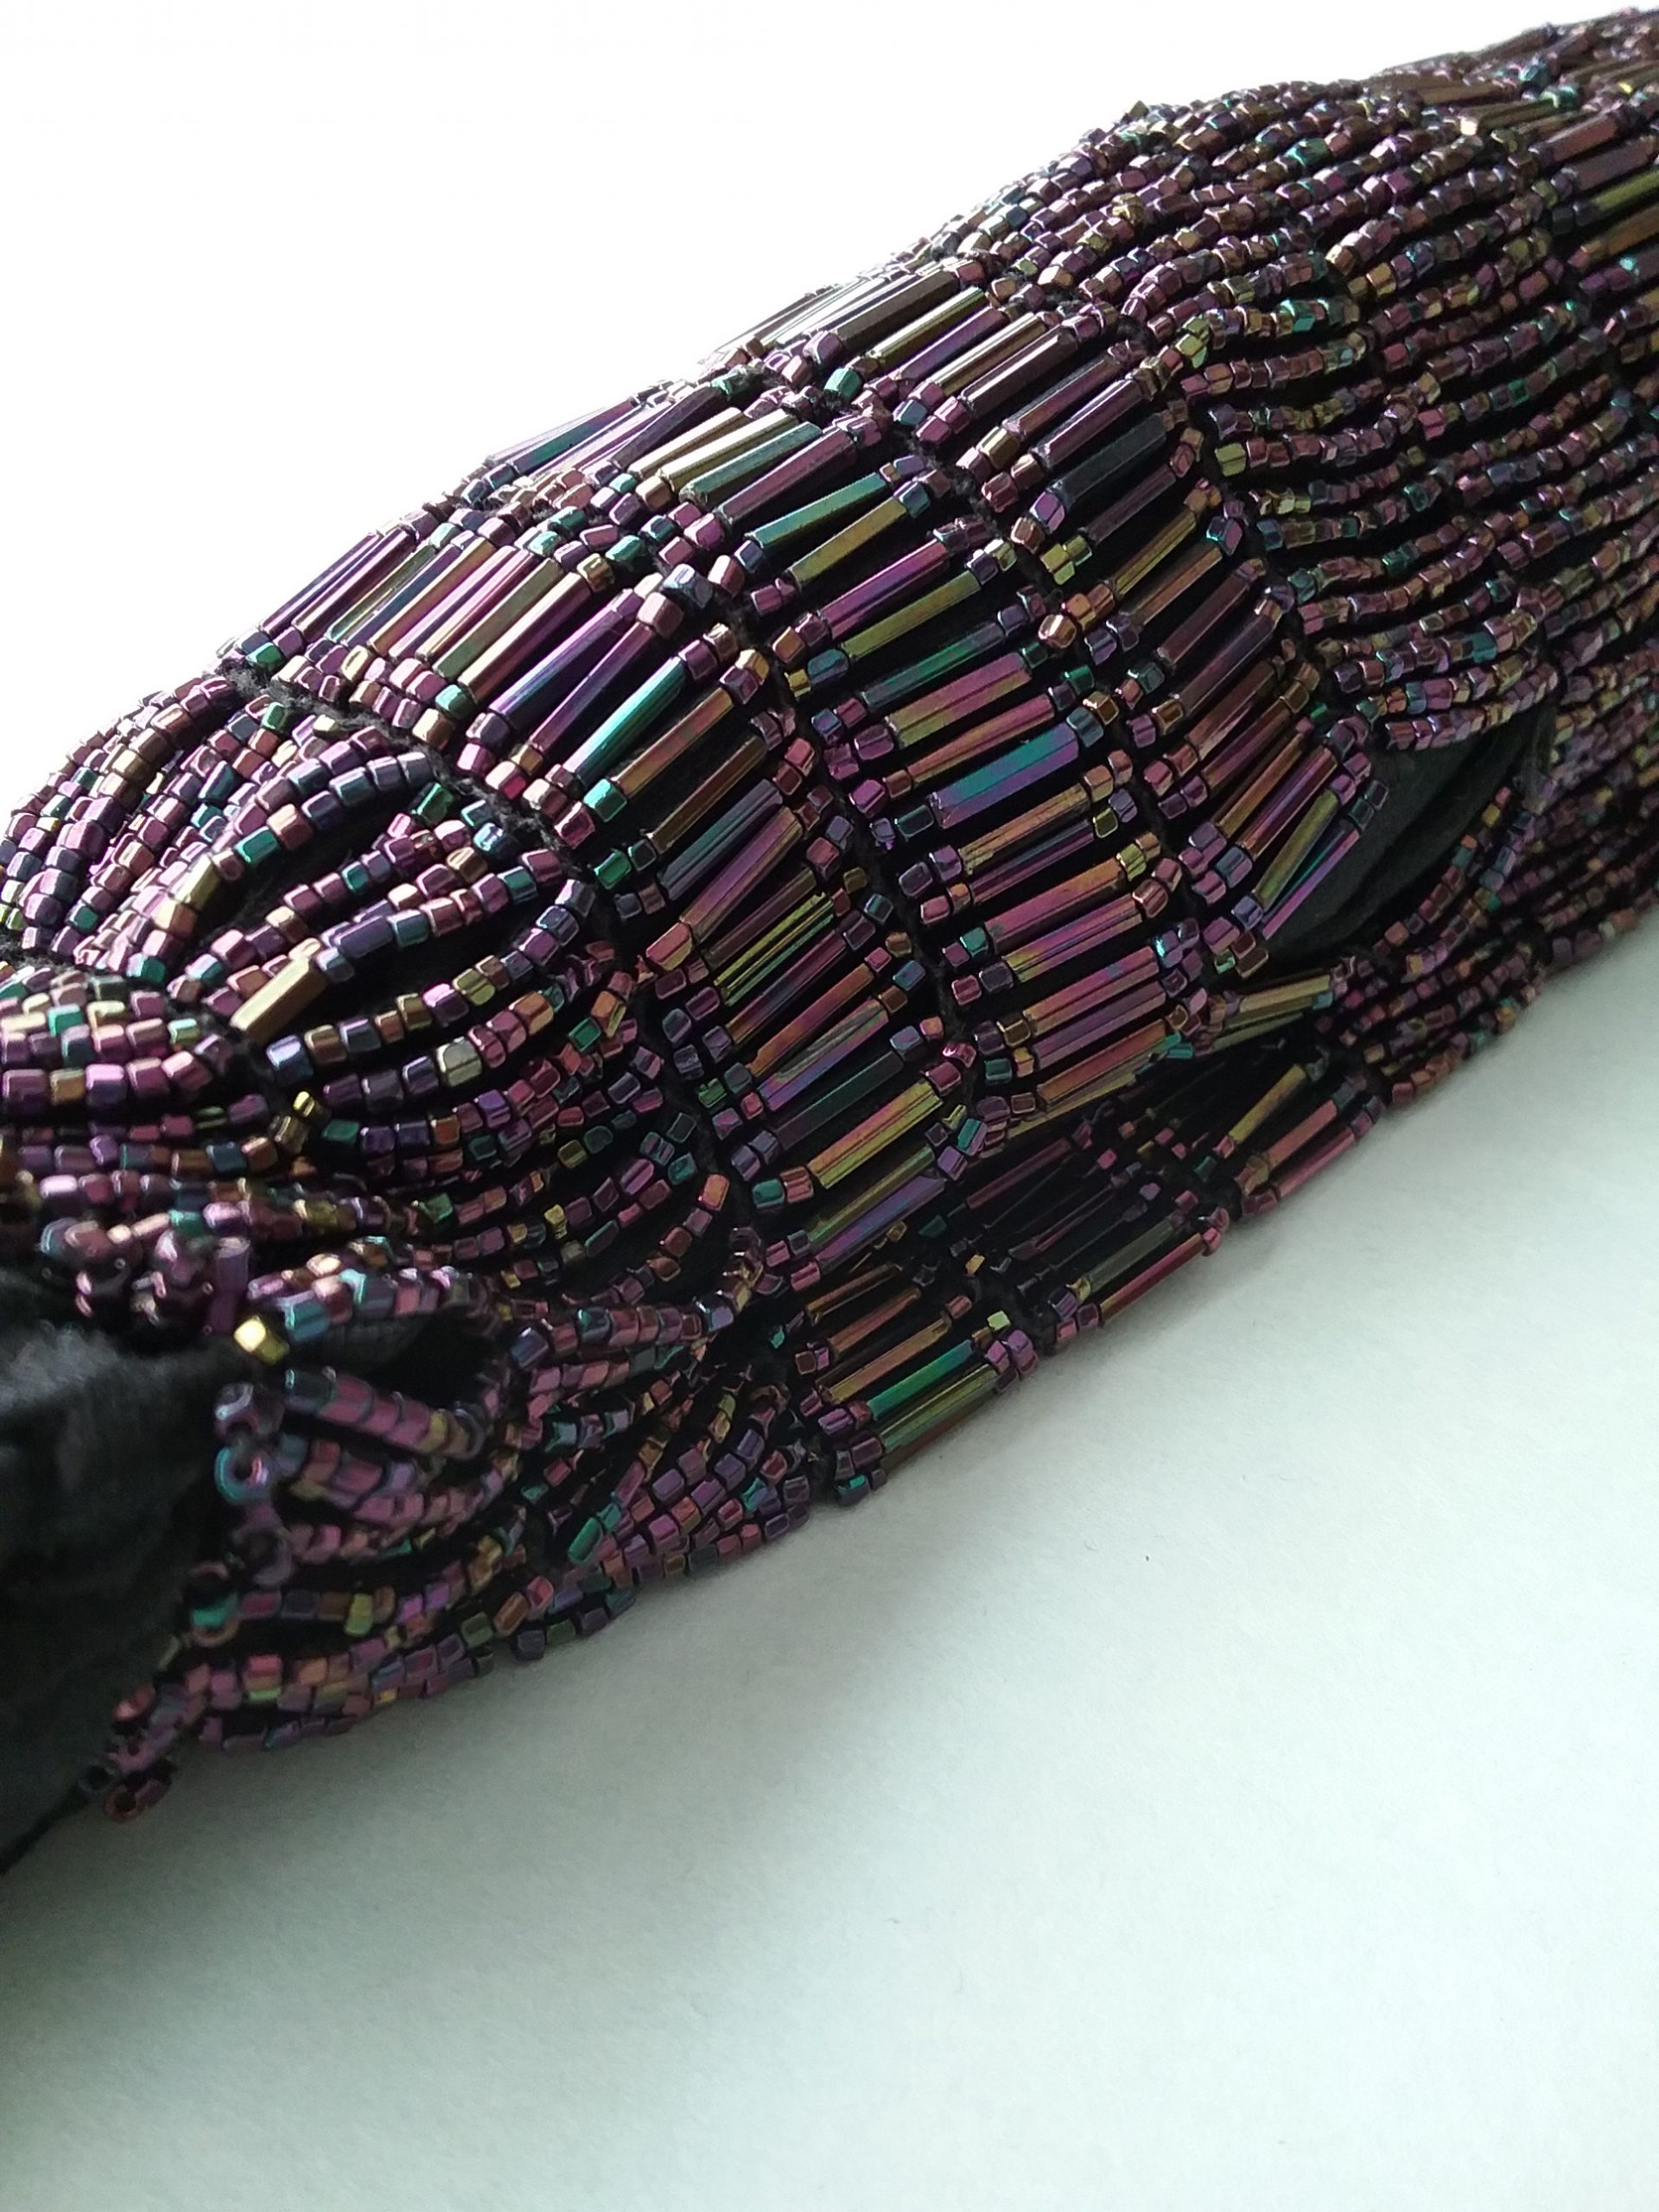 Closeup of evening handbag showing the purple iridescent beads. MCHS collections, #1985.24.18.